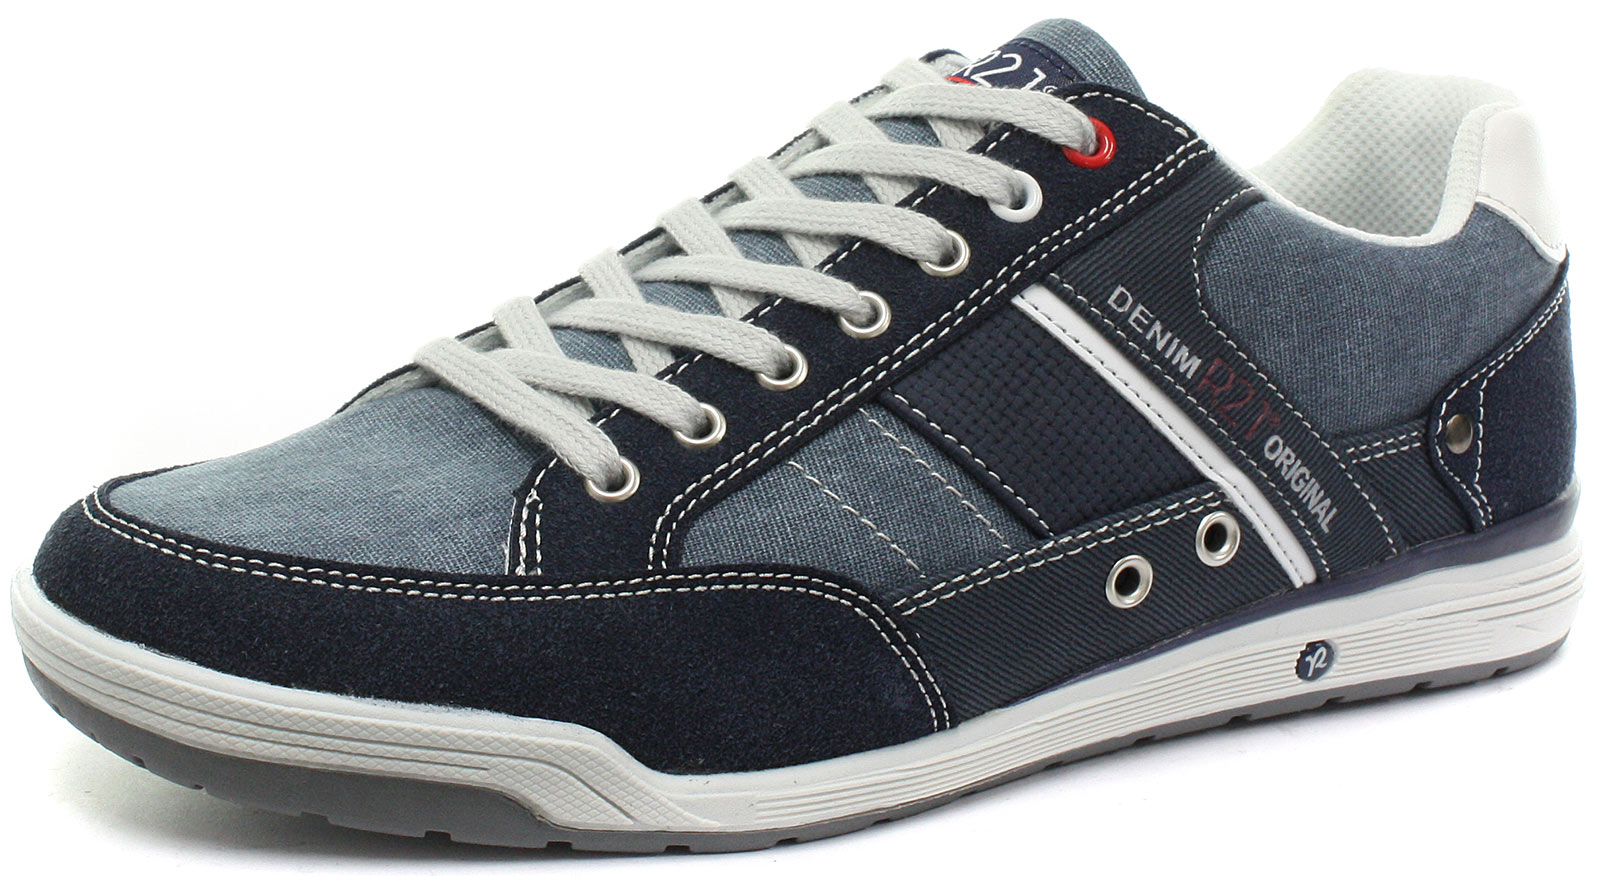 New Route 21 M145NC 7 Eye Mens Casual Lace Up shoes Size UK 7 (EU 41)